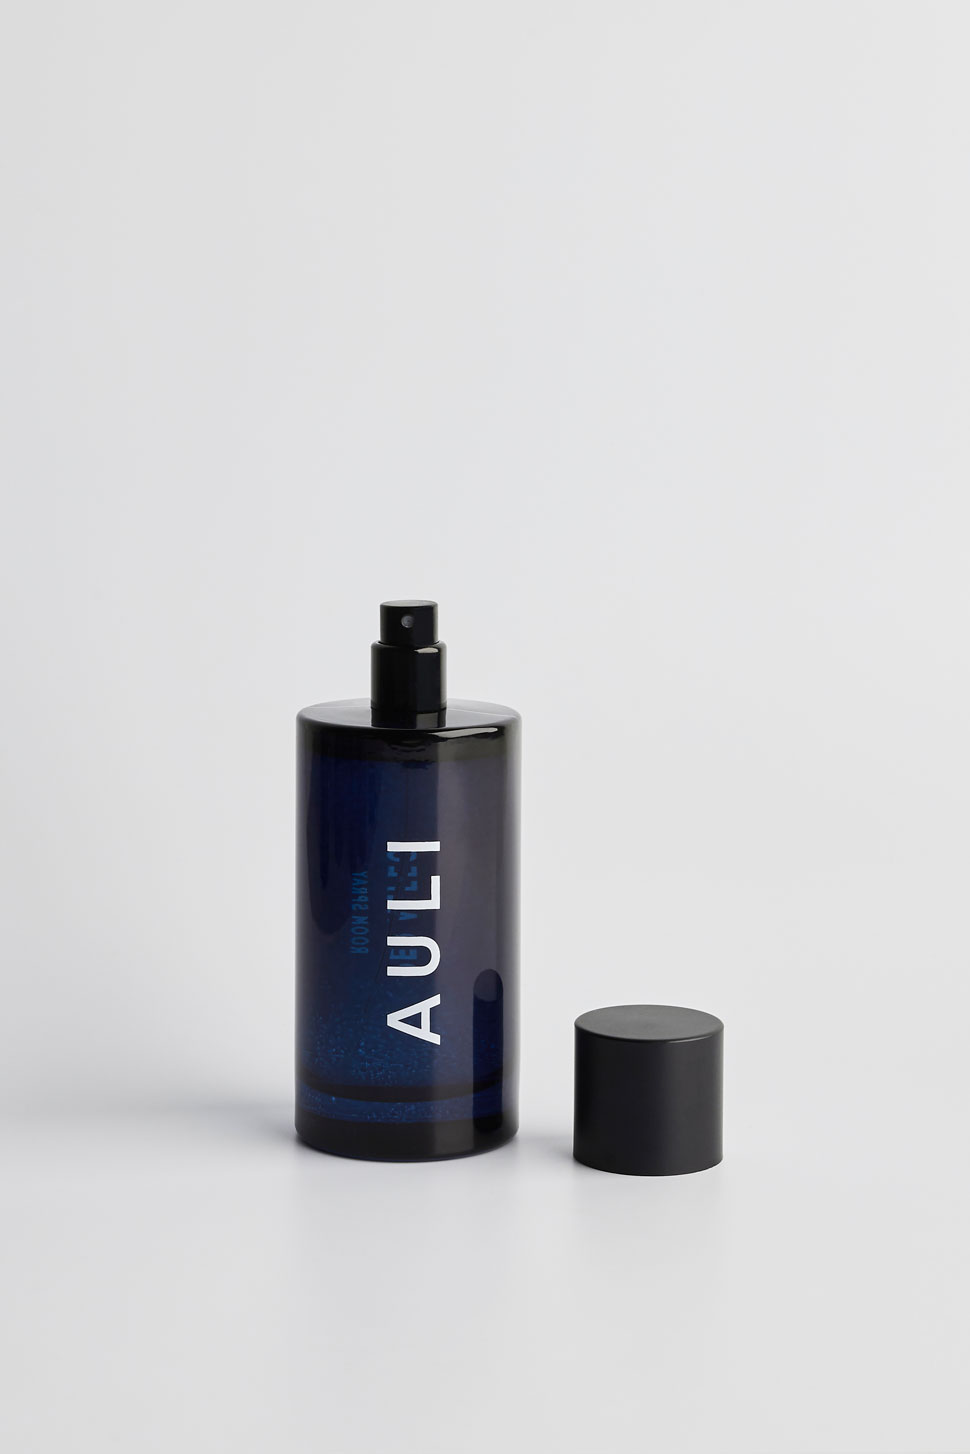 Cedrello Citron | Room Spray & Ceramic Disc by Auli London on curated-crowd.com